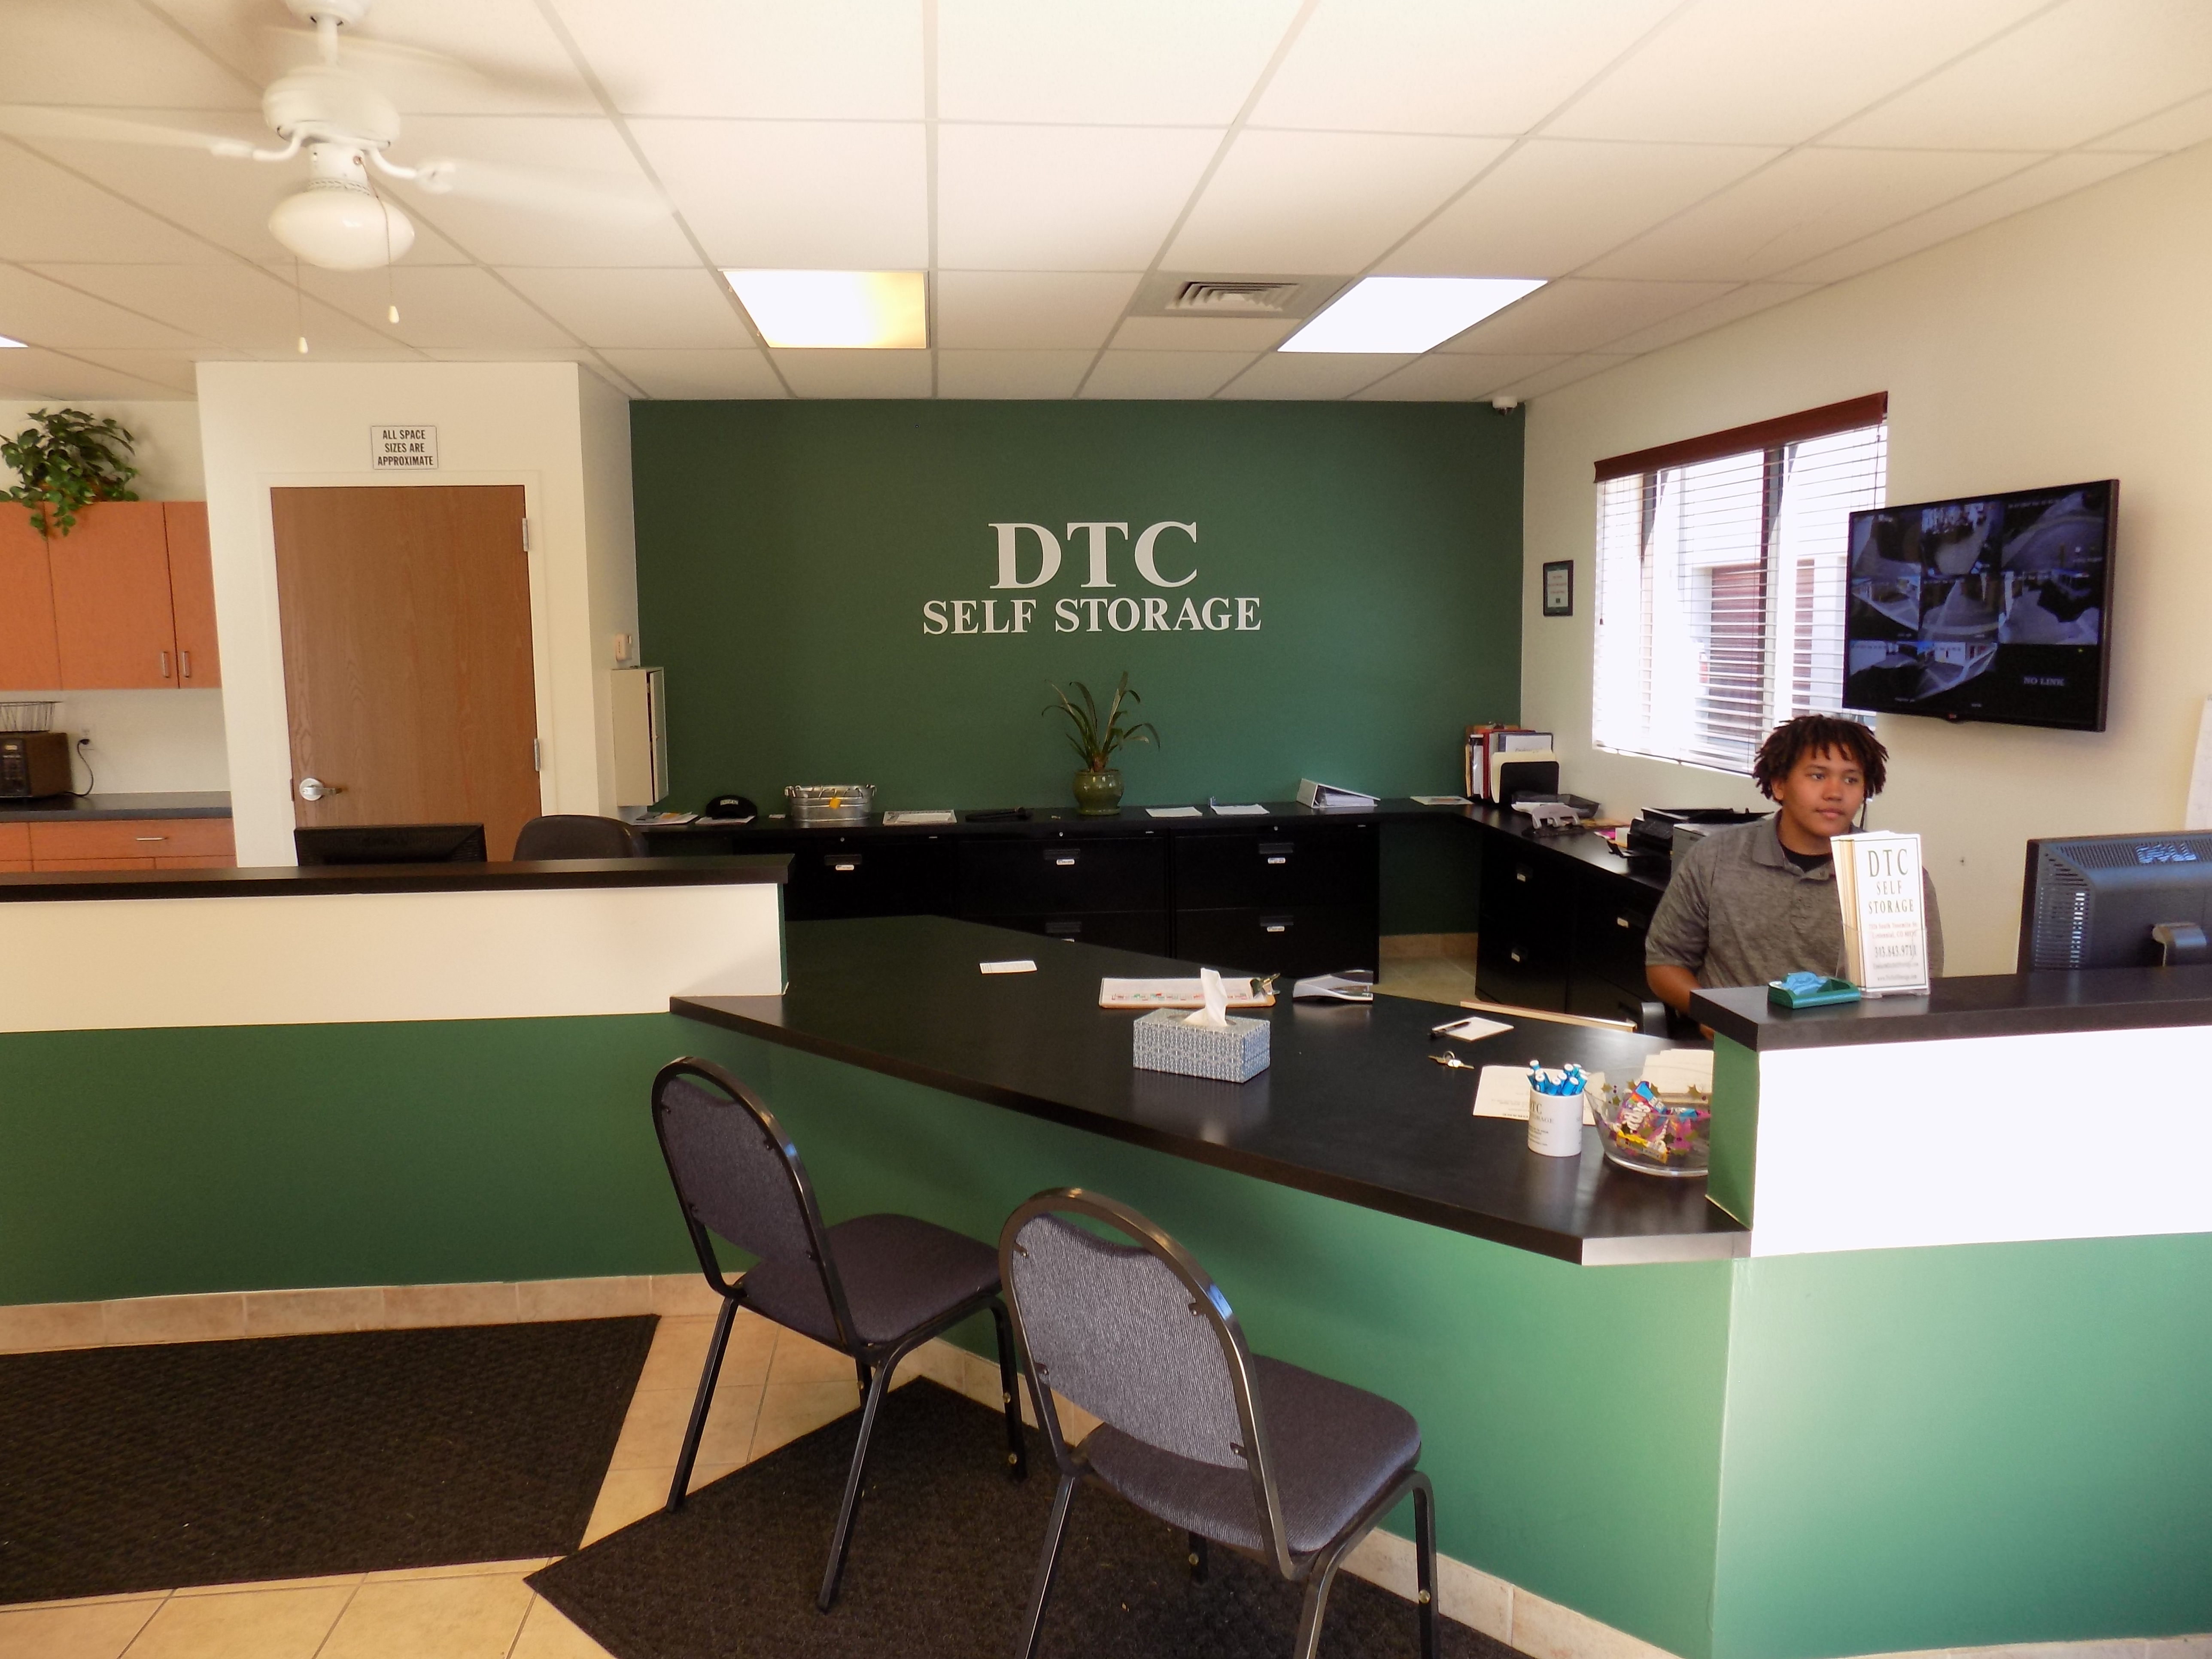 DTC Friendly Manager and Helpful Staff